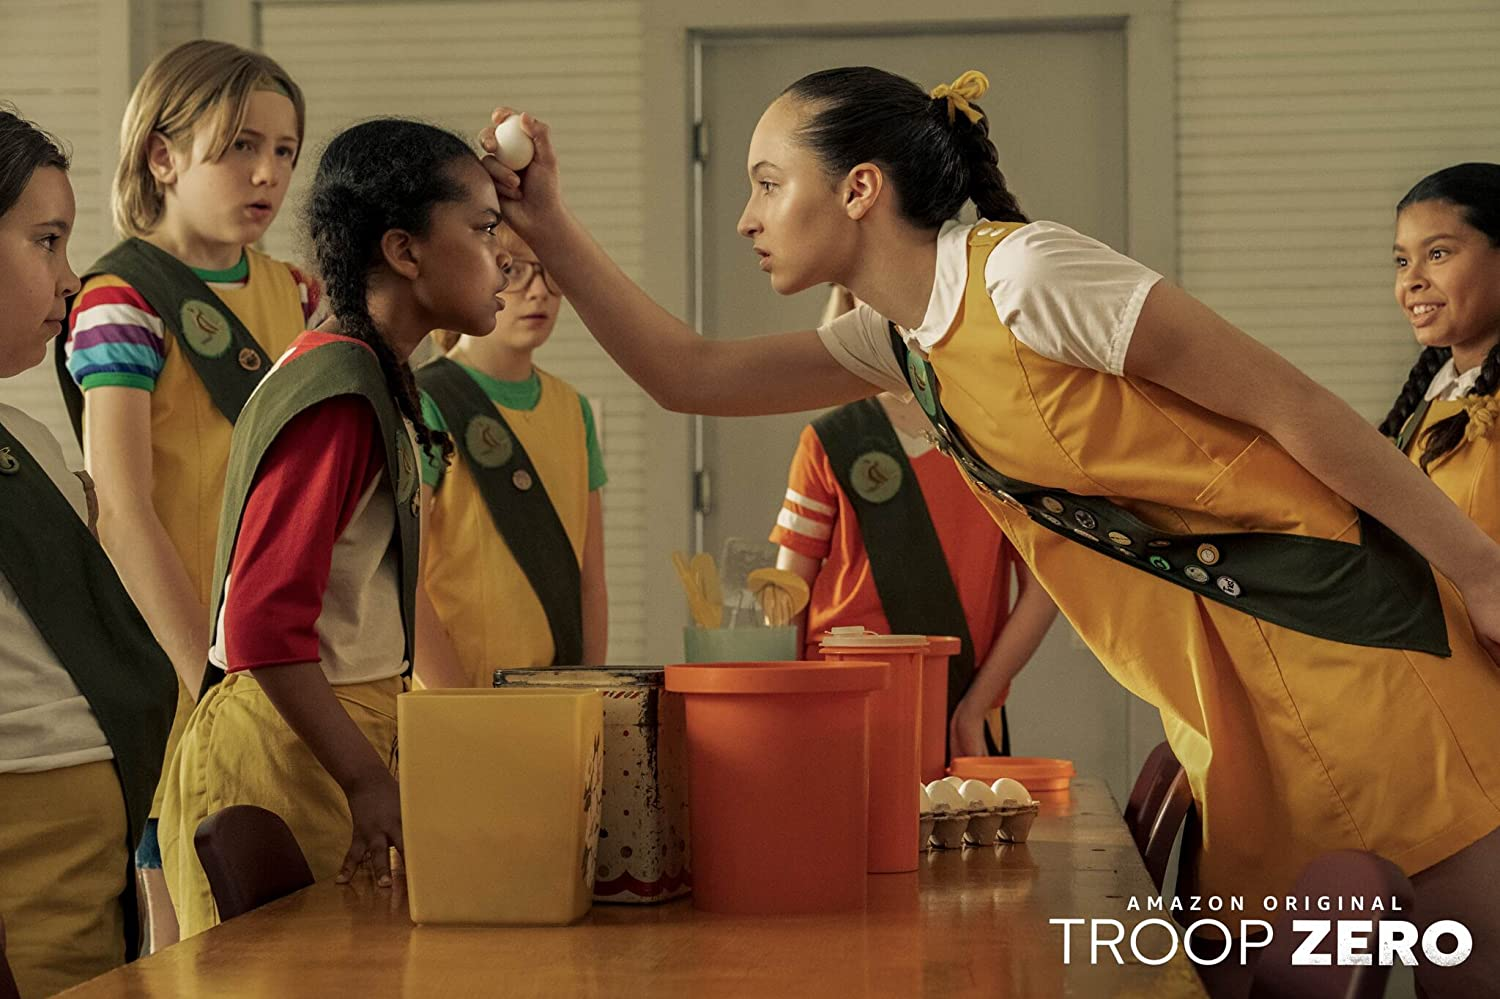 Ashley Brooke, Bella Higginbotham, Charlie Shotwell, Johanna Colón, and Milan Ray in Troop Zero (2019)